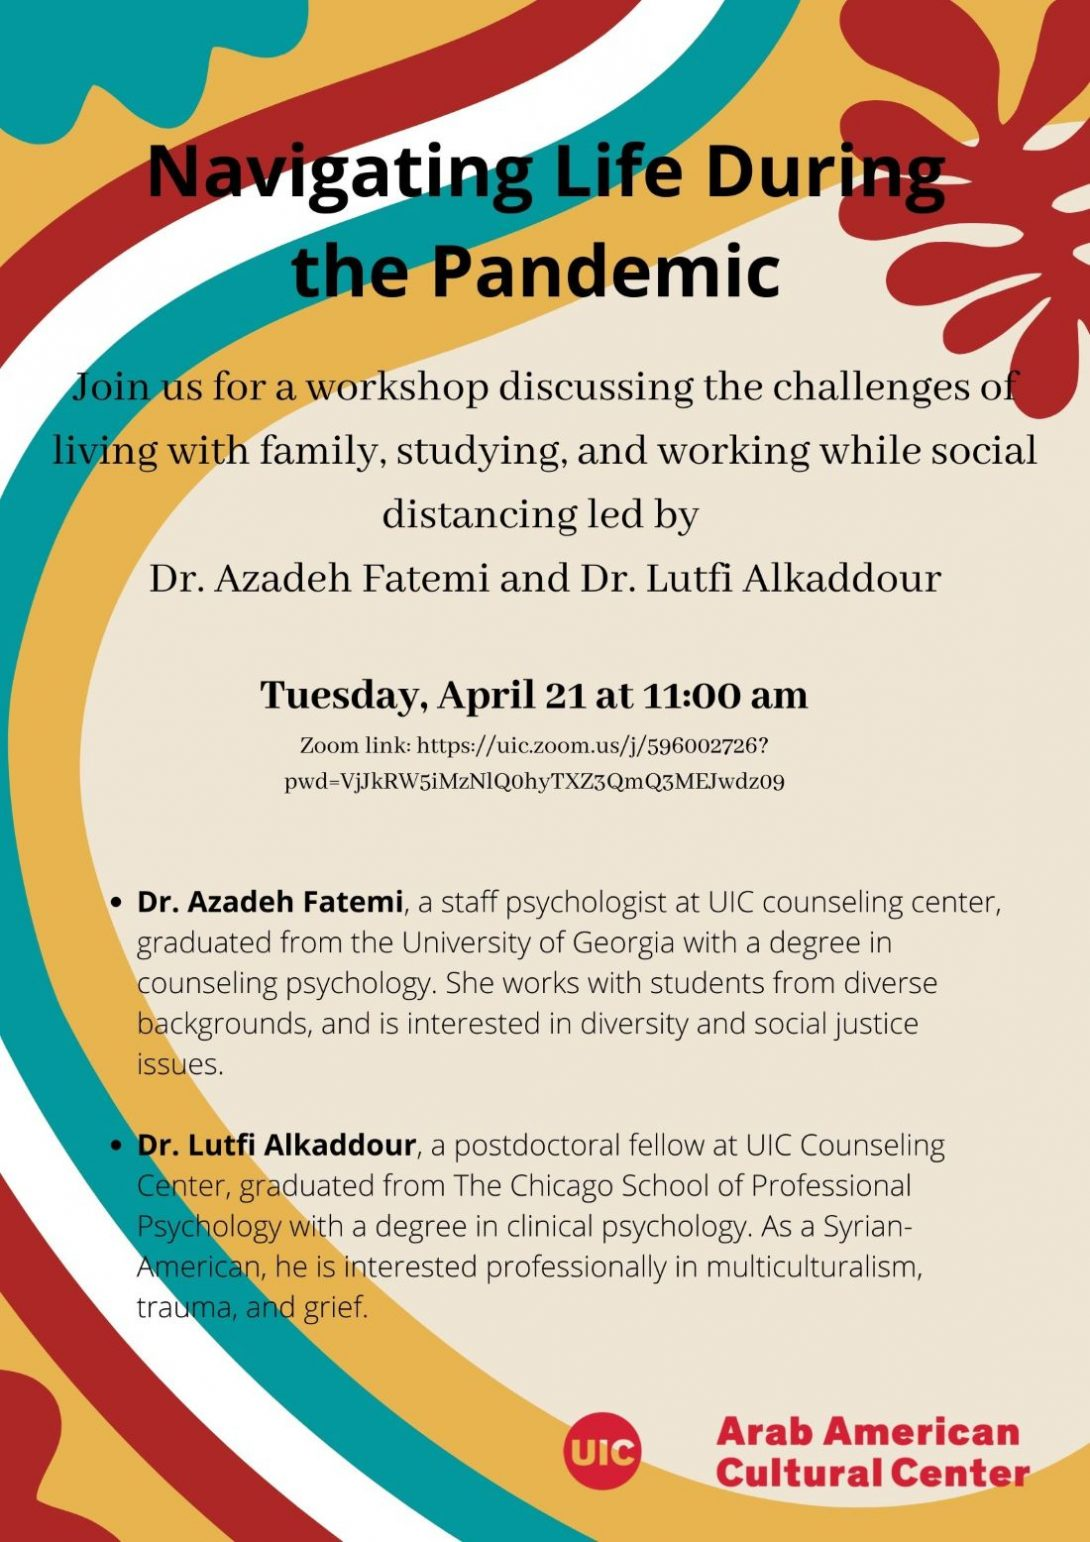 Flyer has colorful wavy lines running from top to buttom in white, red, teal and light orange and a red leaf on top. The Title of the Event: Navigating Life During the Pandemic is written in black on top with additional information about the event as listed in the event description on the page itself.